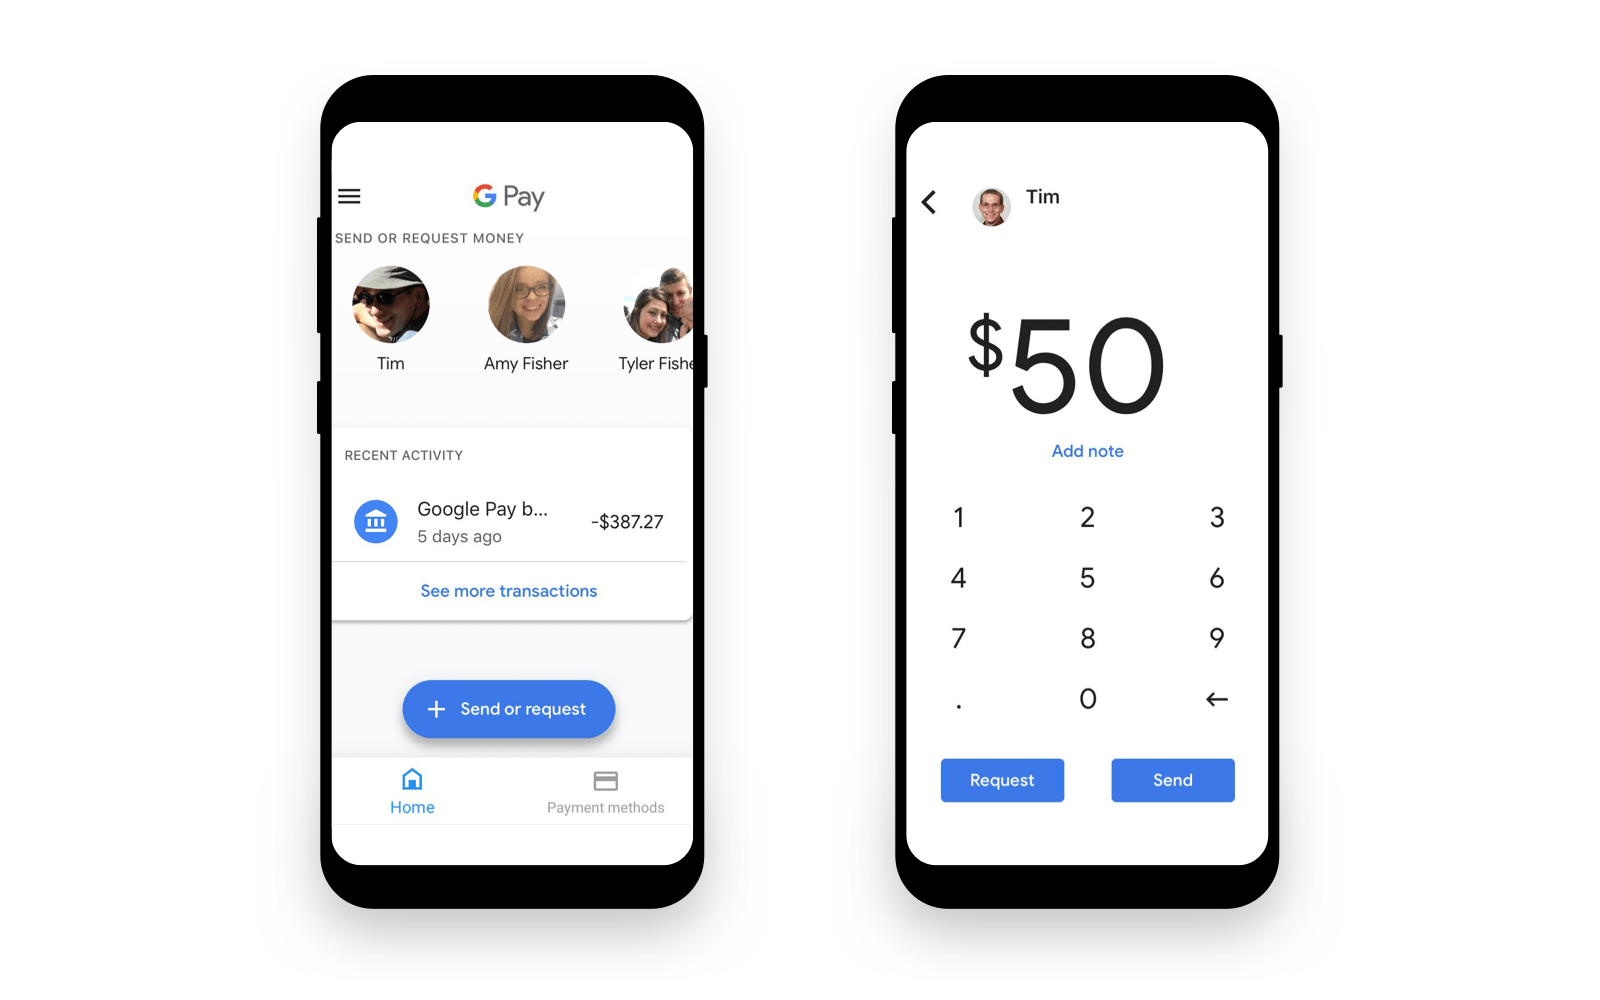 Build A P2P Payment App That Meets All Your Requirements